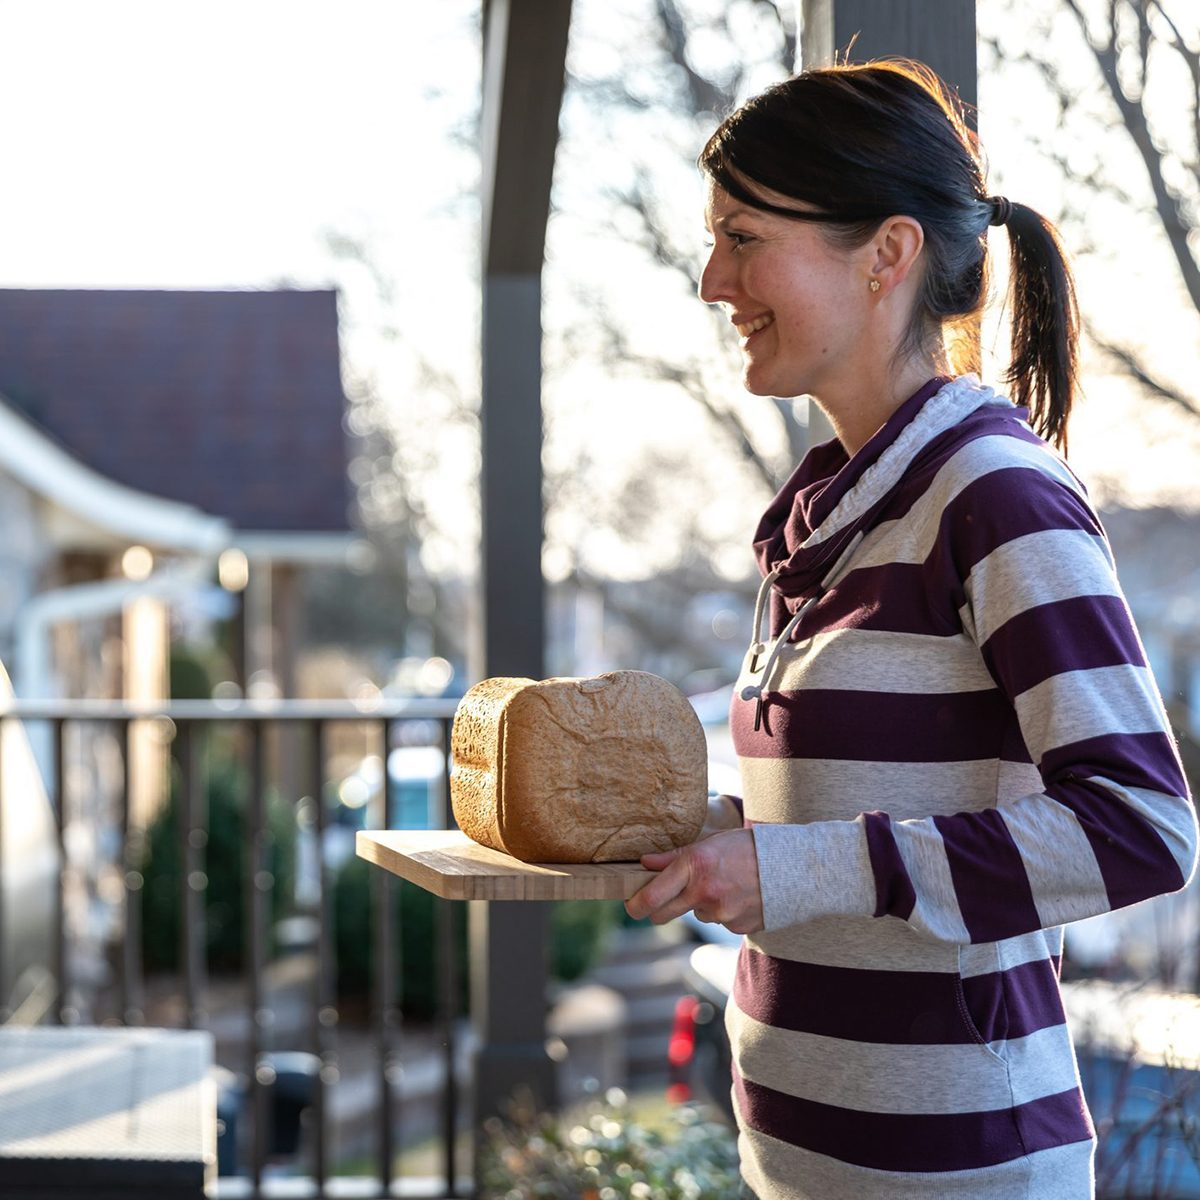 Young woman bringing homemade bread to neighbor's door at sunset during COVID-19 Crisis.